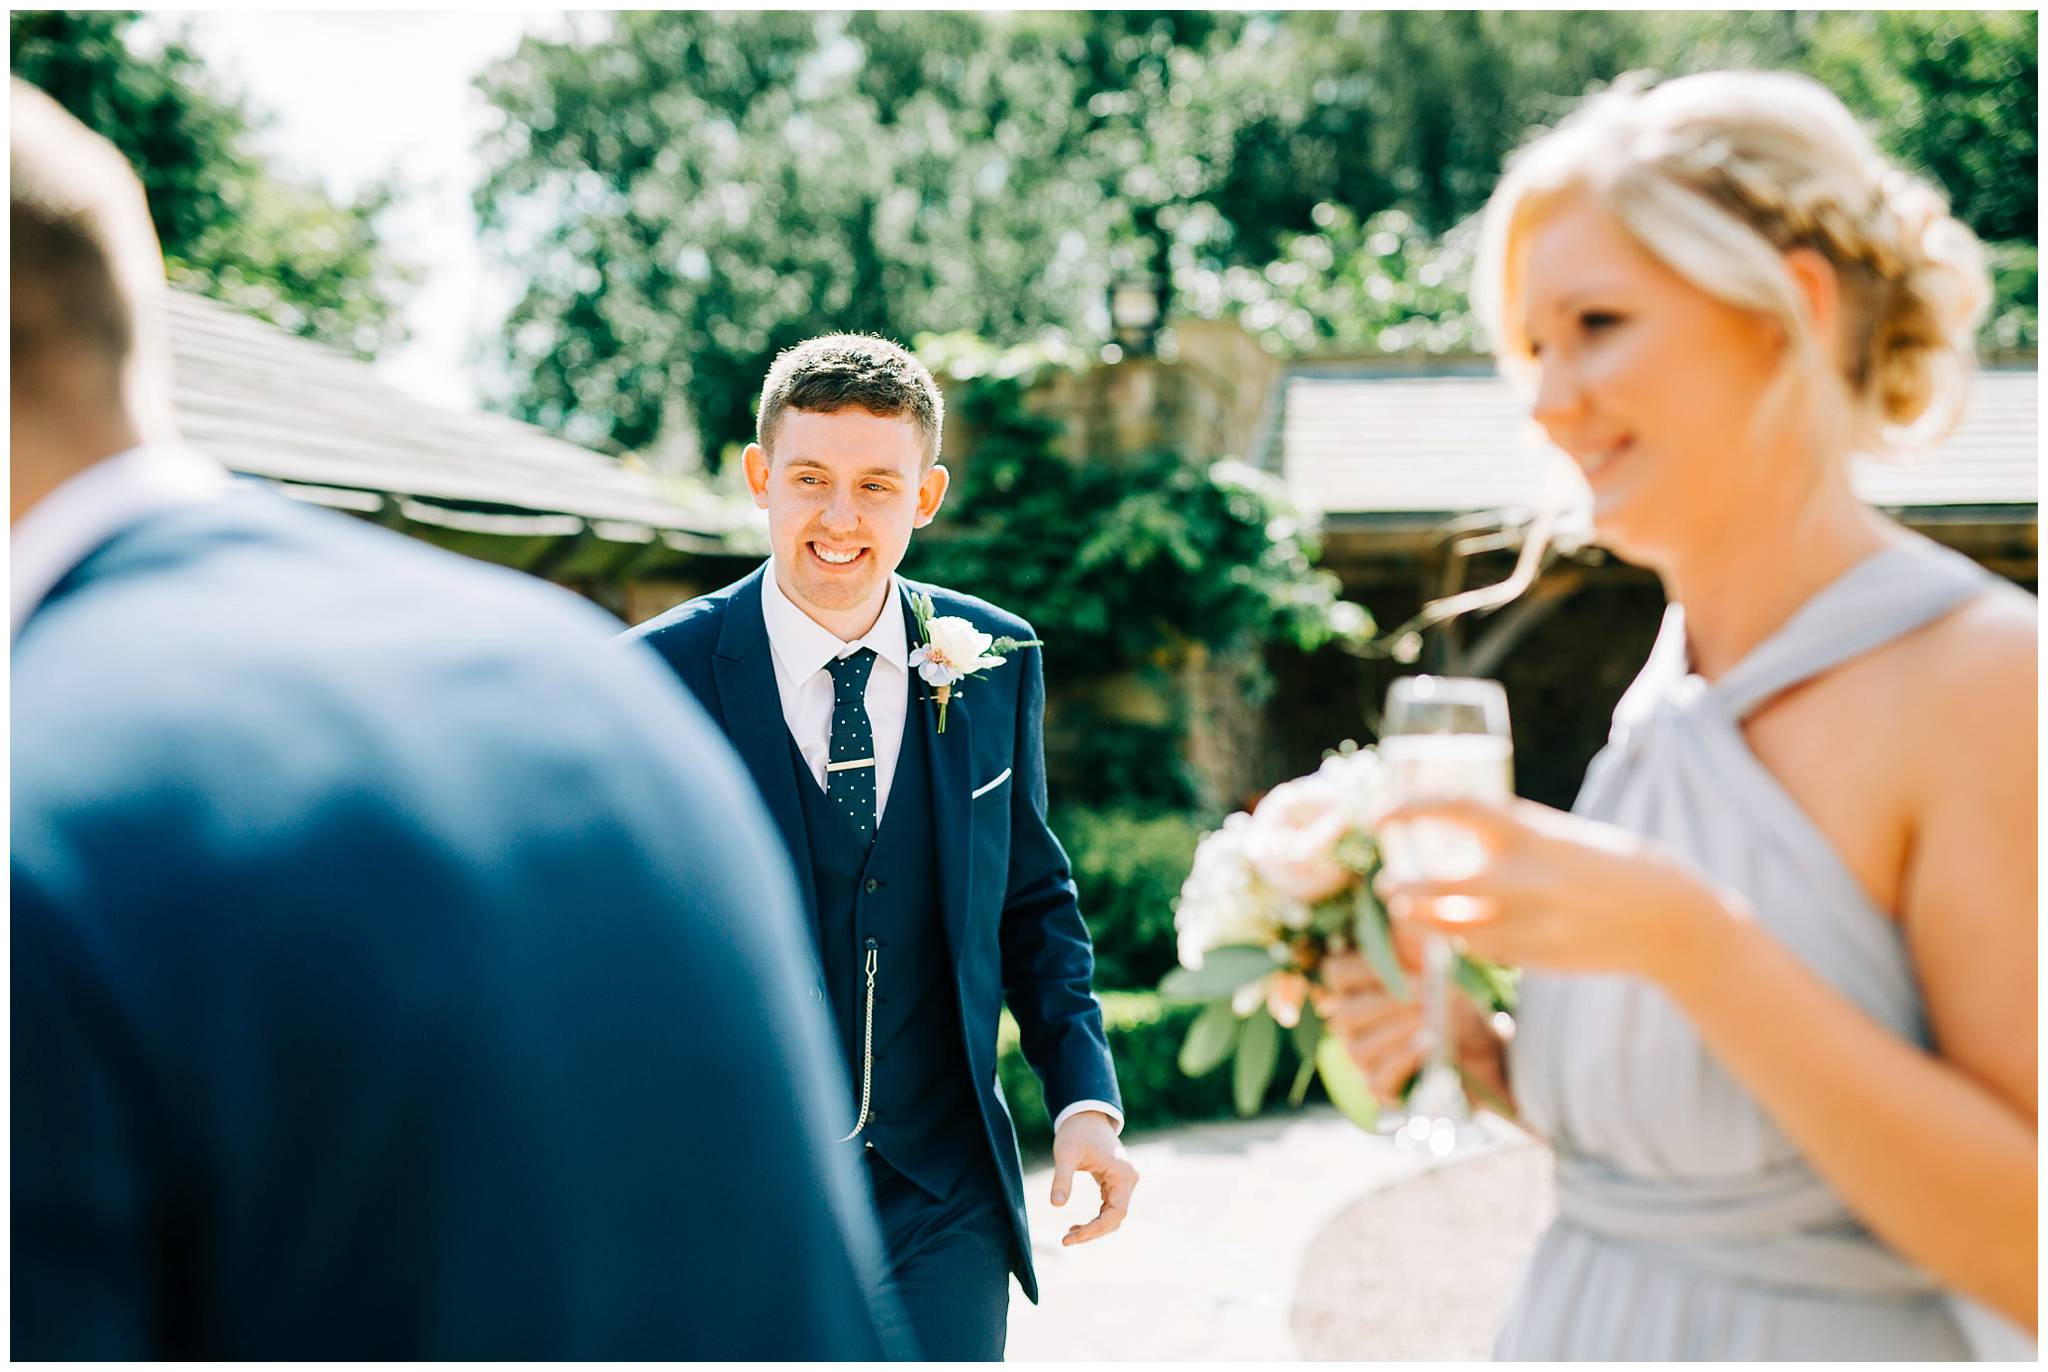 groom outside after ceremony smiling with guests